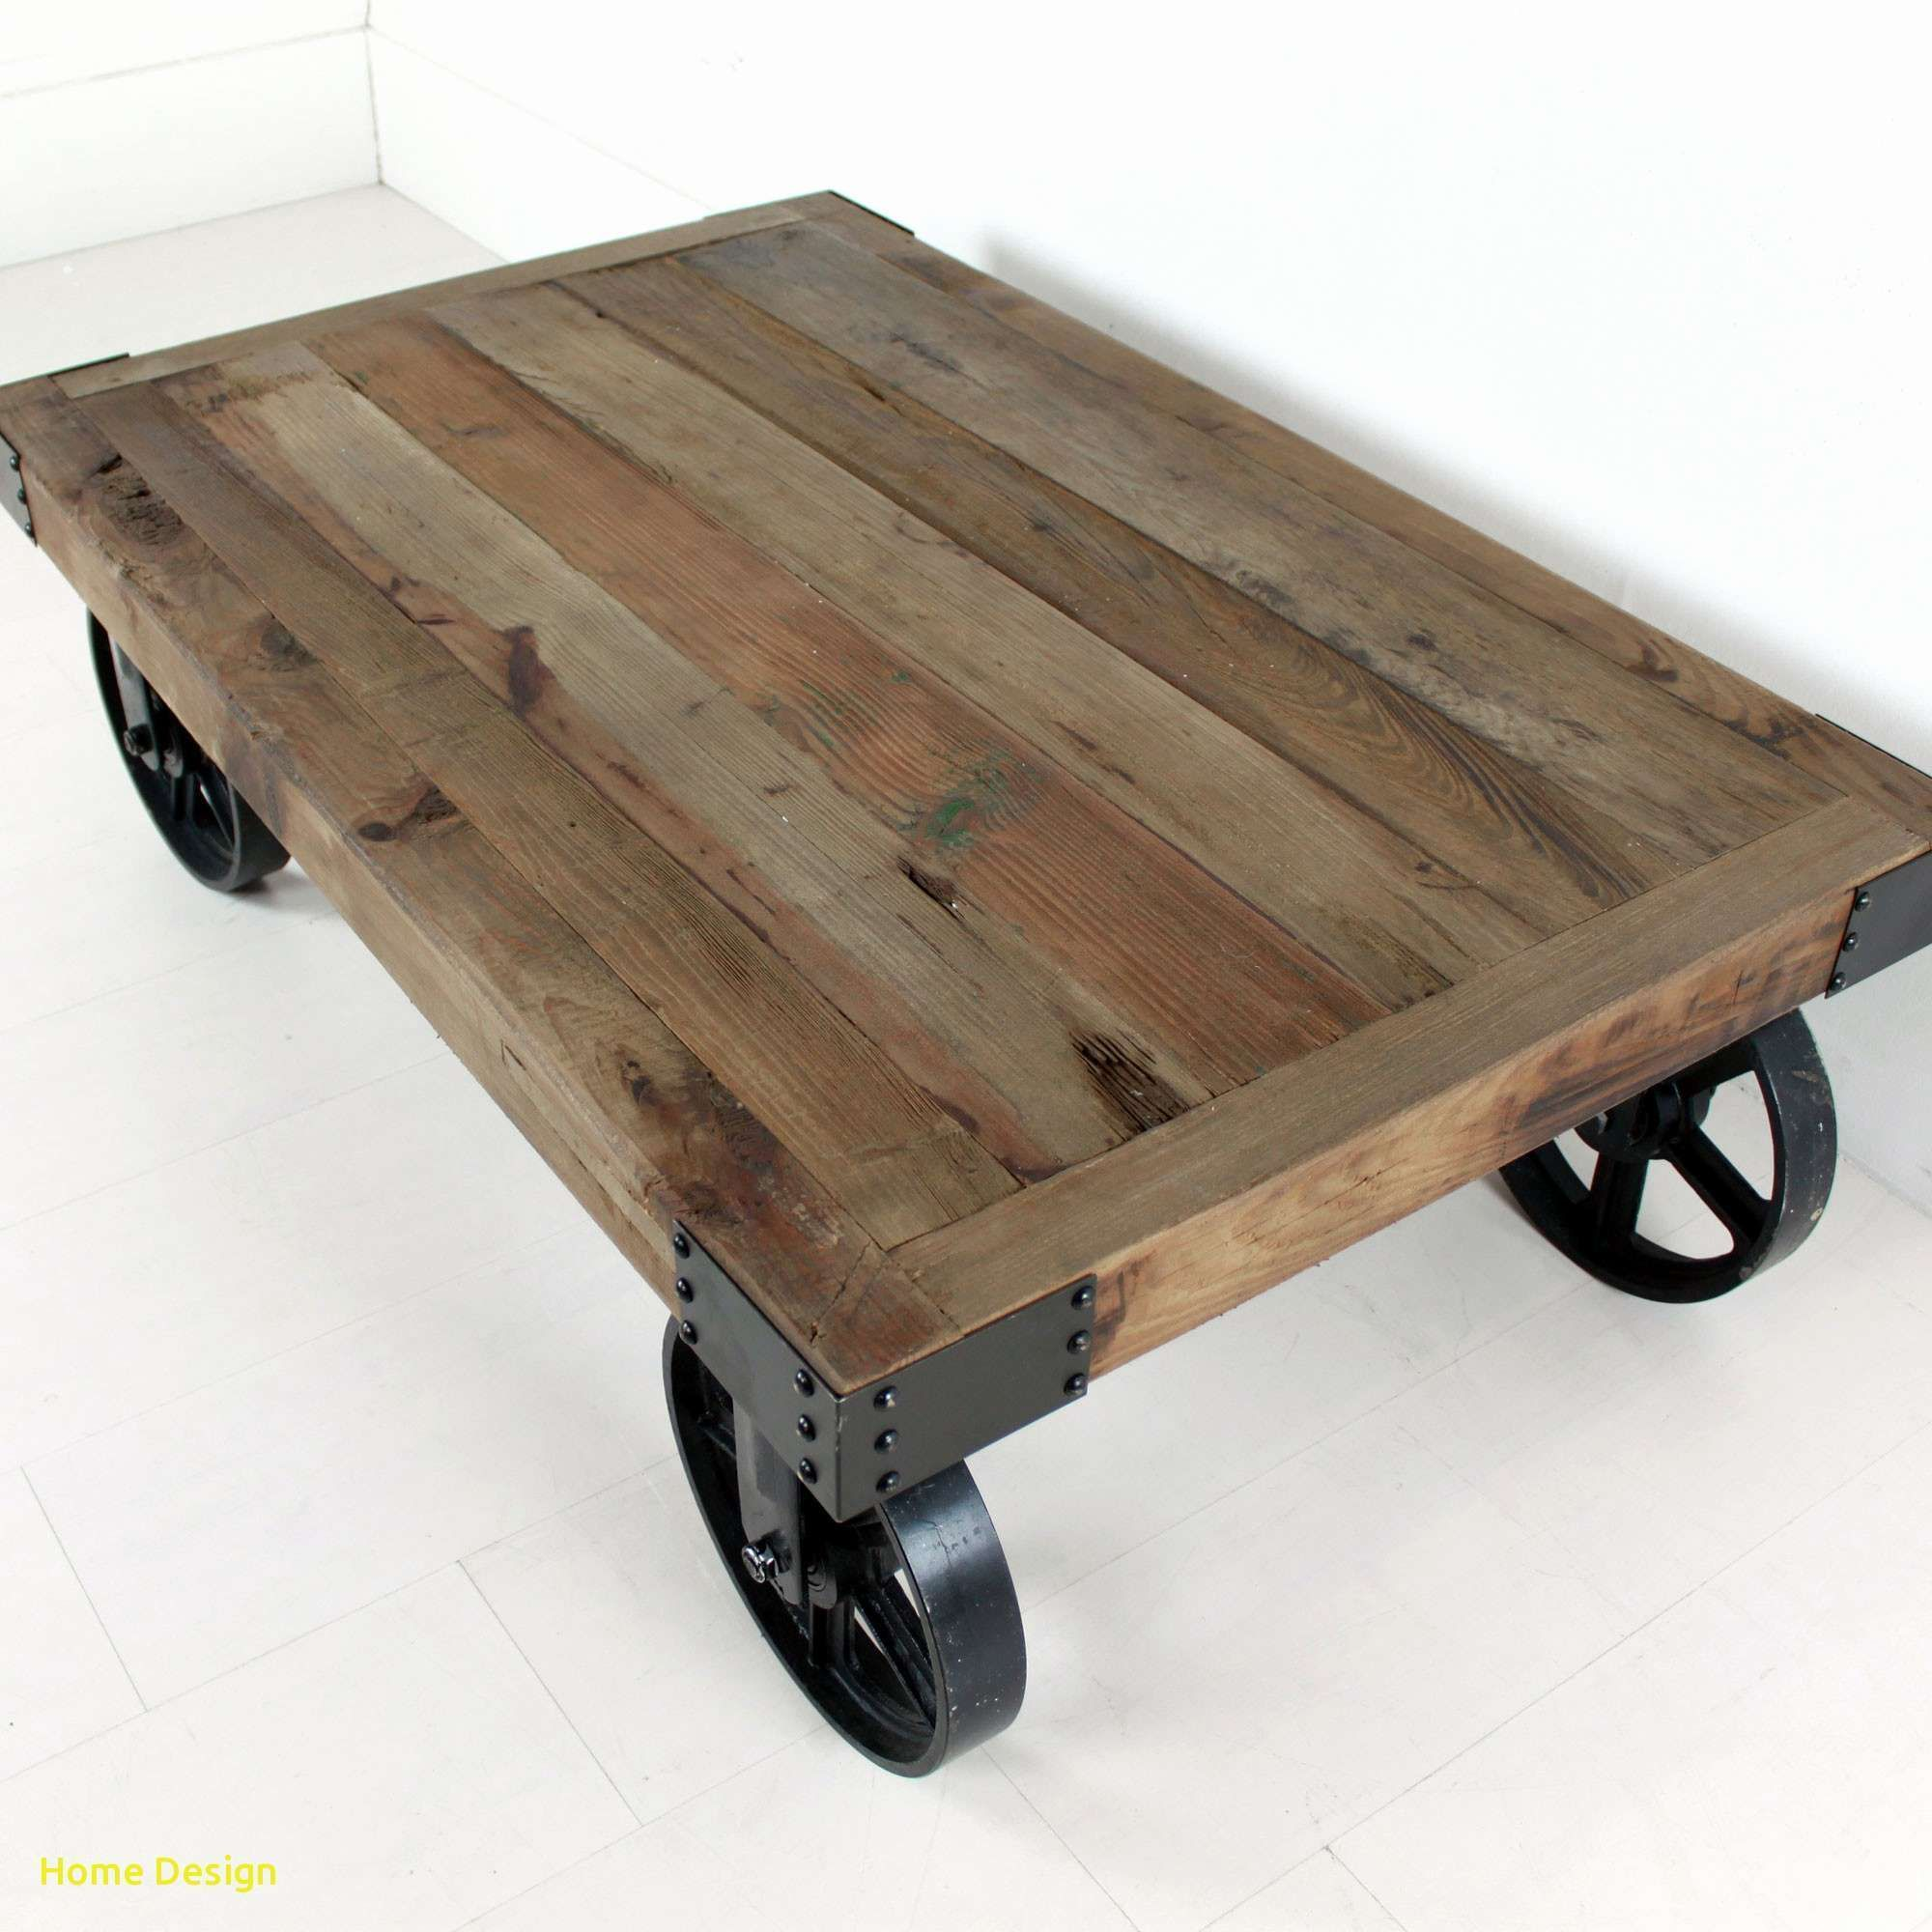 Elegant Industrial Coffee Table With Wheels Homedesign Homedecor